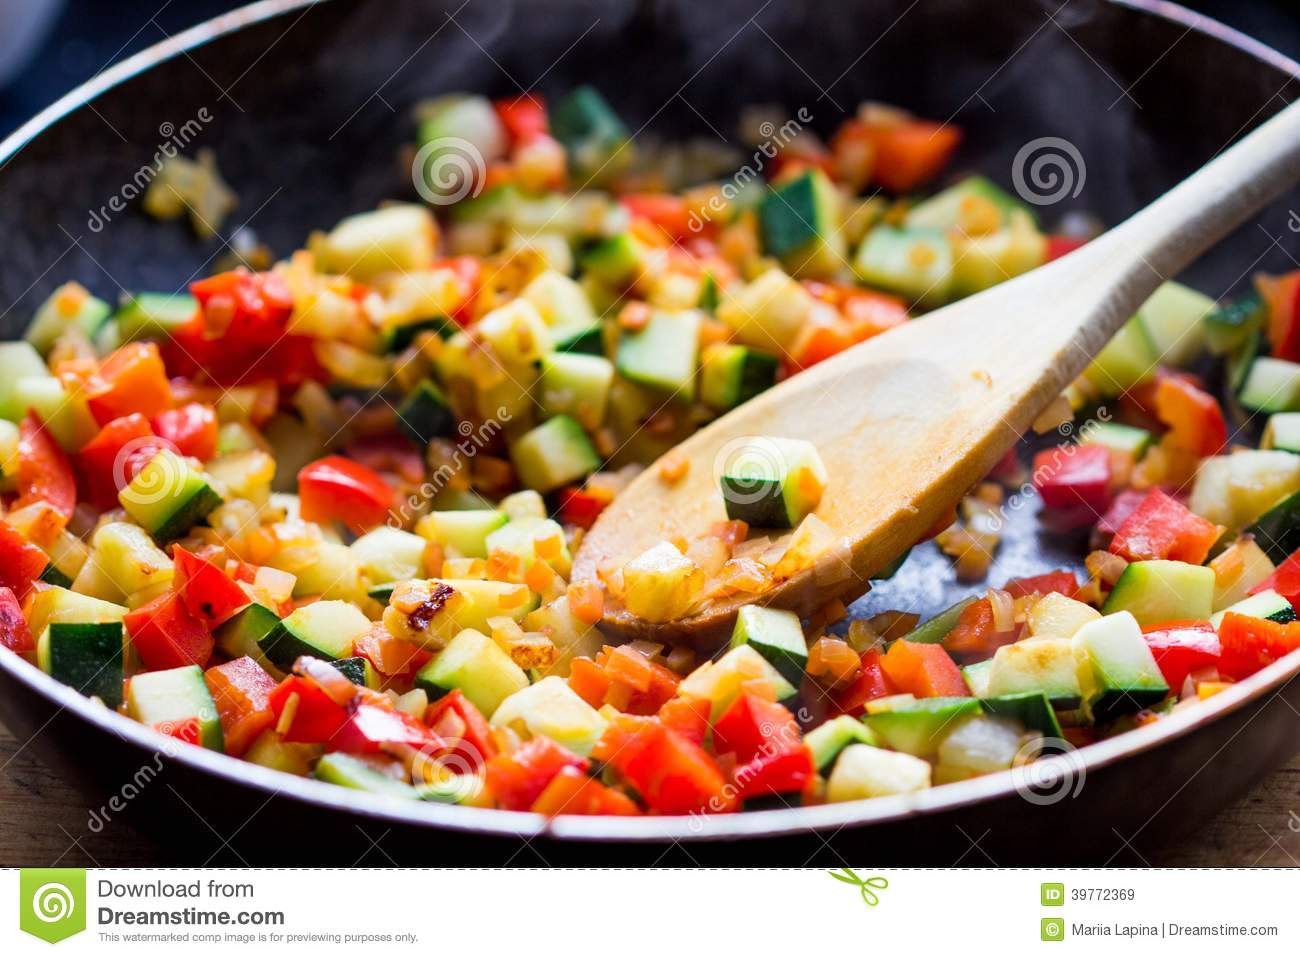 Cooking stew ratatouille from vegetables in frying pan